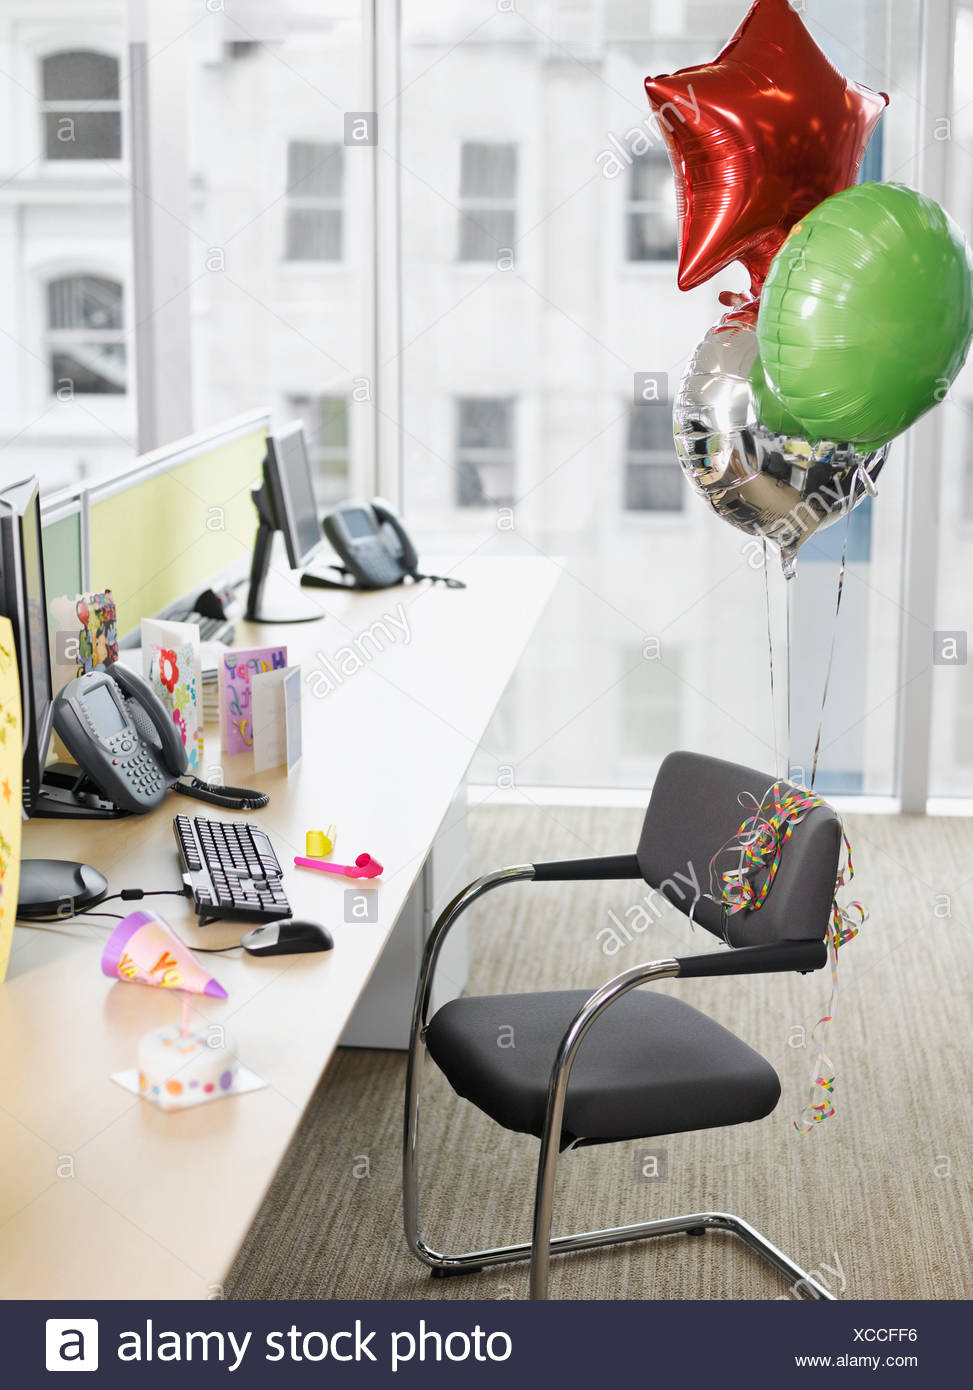 birthday balloons tied to office chair stock photo 283017370 alamy rh alamy com French Balloon Chairs Balloon Chair Flight